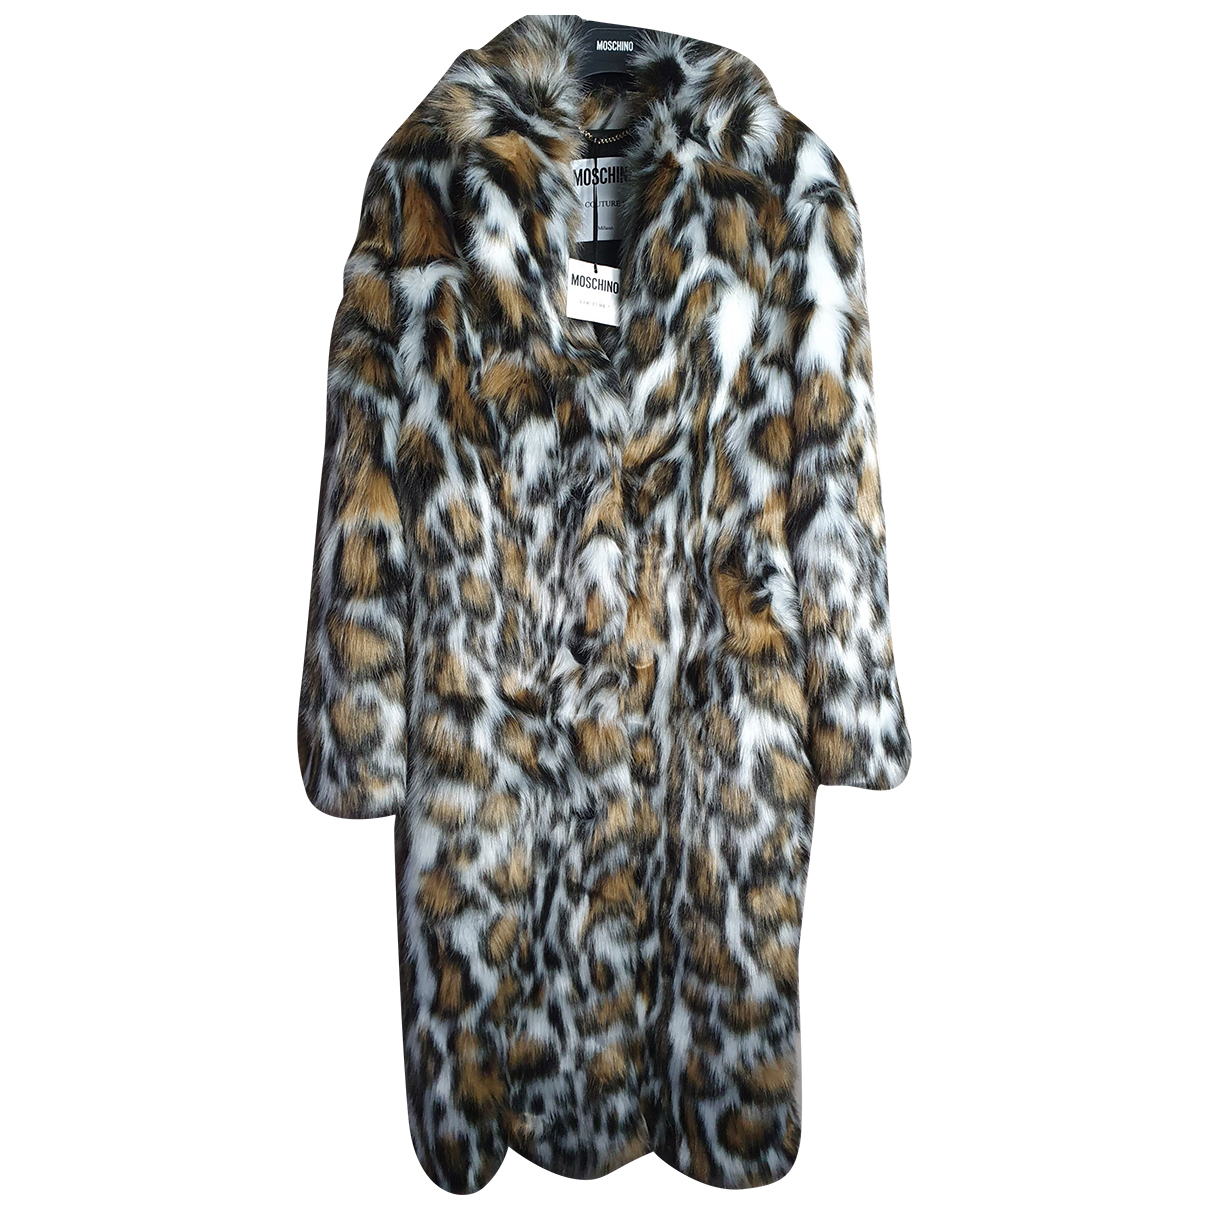 Moschino \N Multicolour Faux fur coat for Women 36 IT